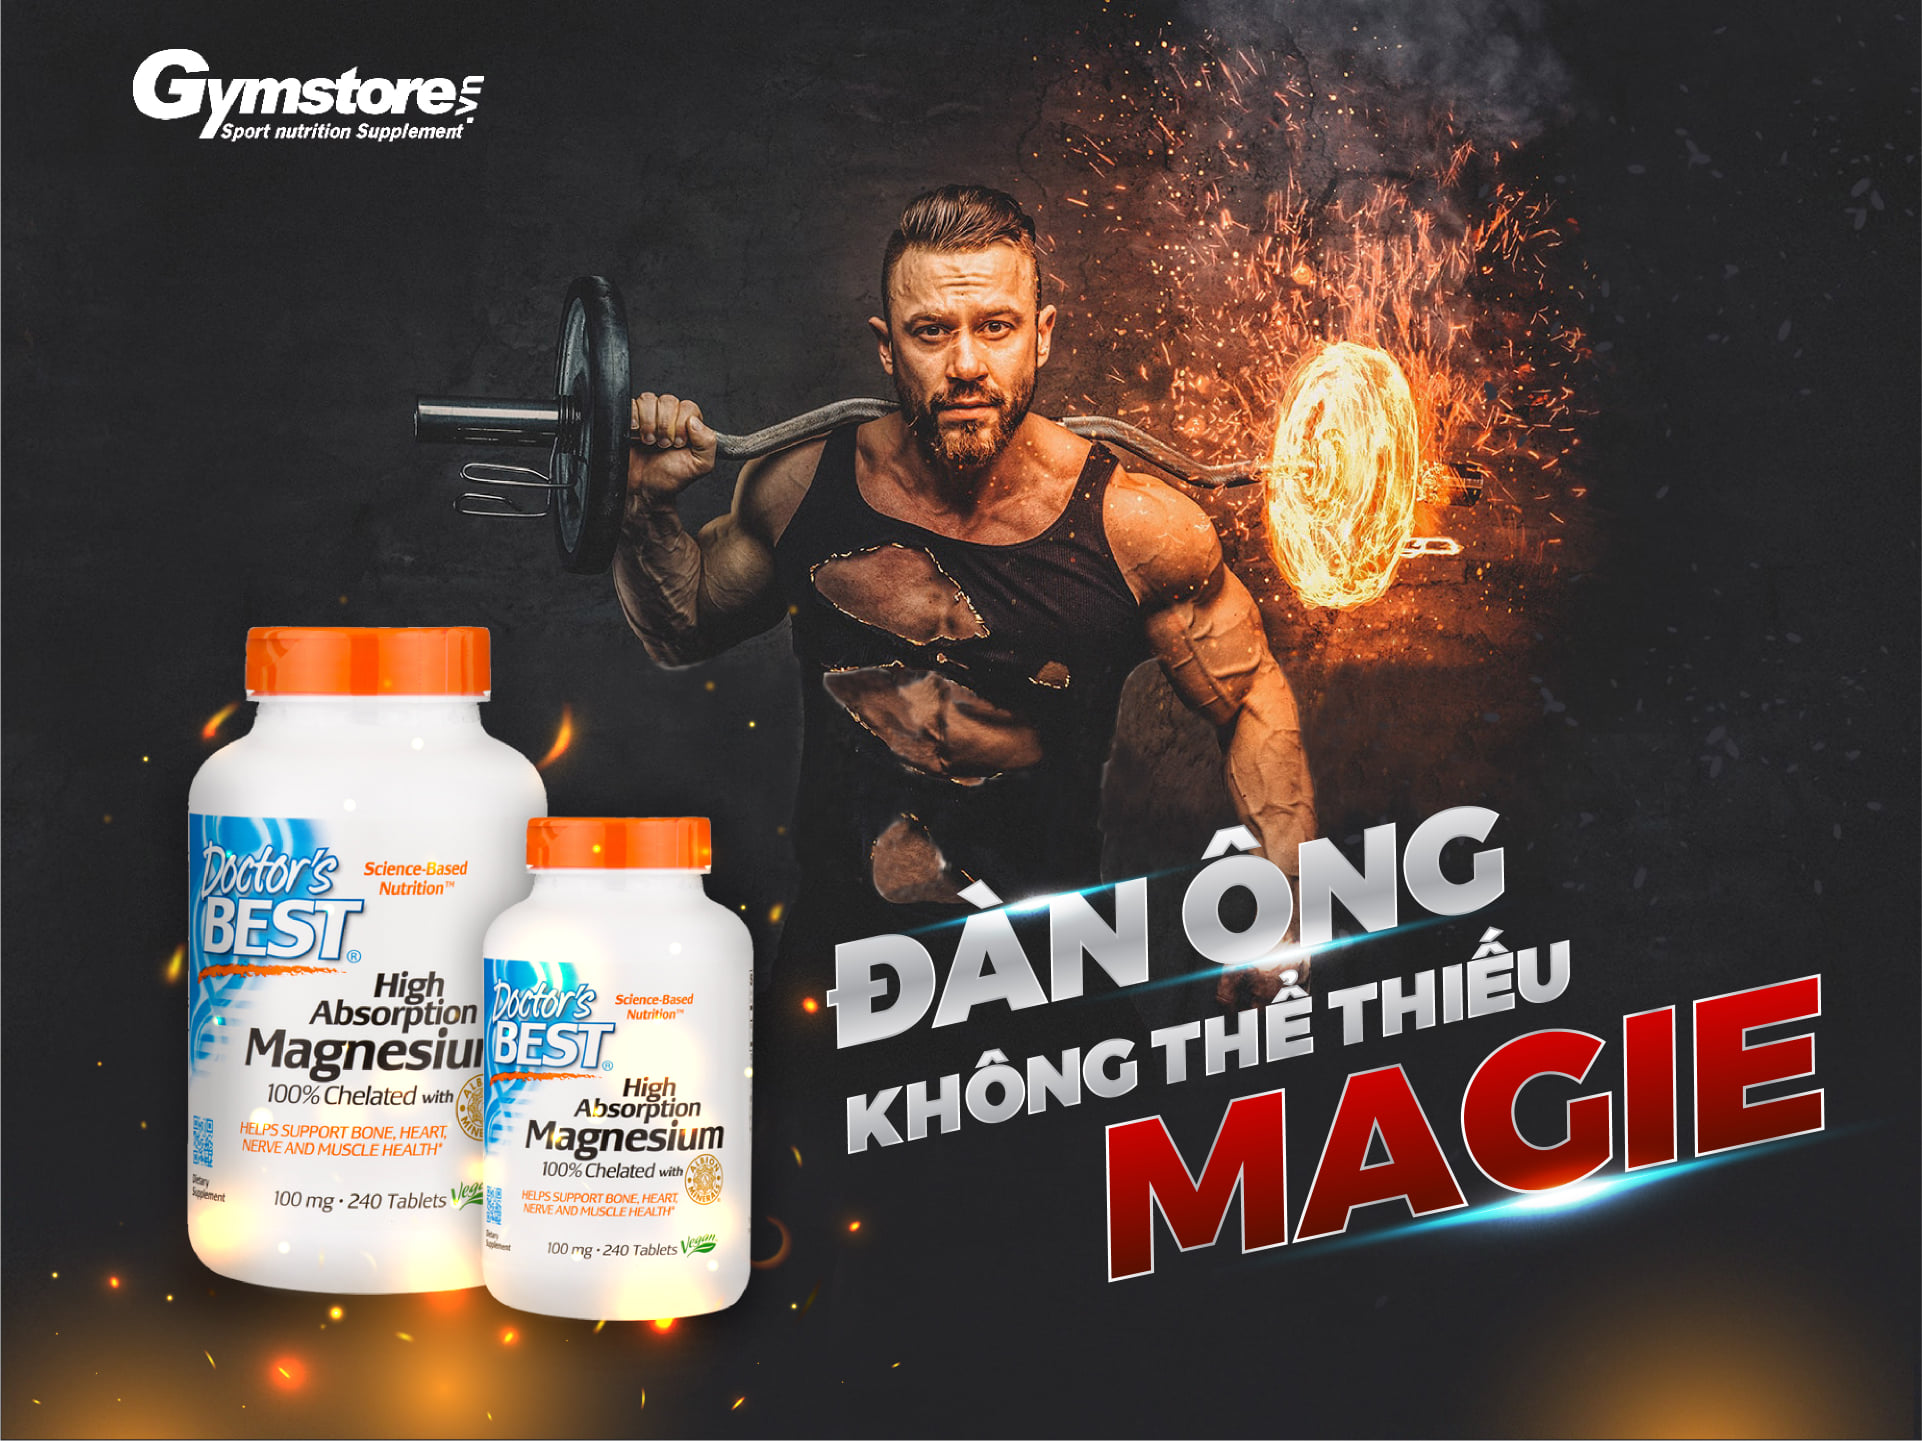 Doctor-Best-High-Absorption-Magnesium-gymstore